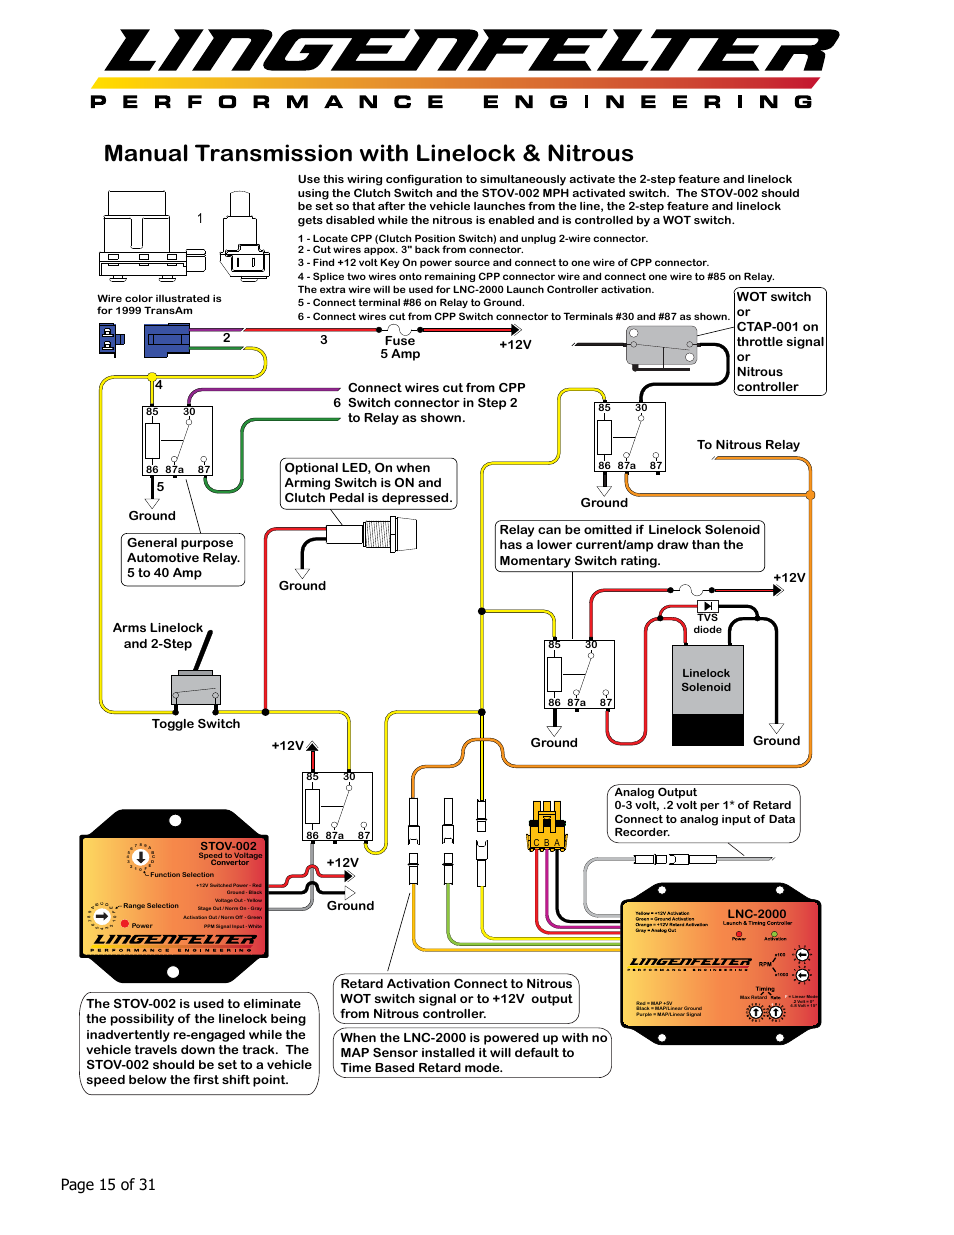 Nitrous Wiring Lnc 2000 Bookmark About Diagram System Manual Transmission With Linelock Page 15 Of 31 12v Fuse Rh Manualsdir Com Just For Purge Basic